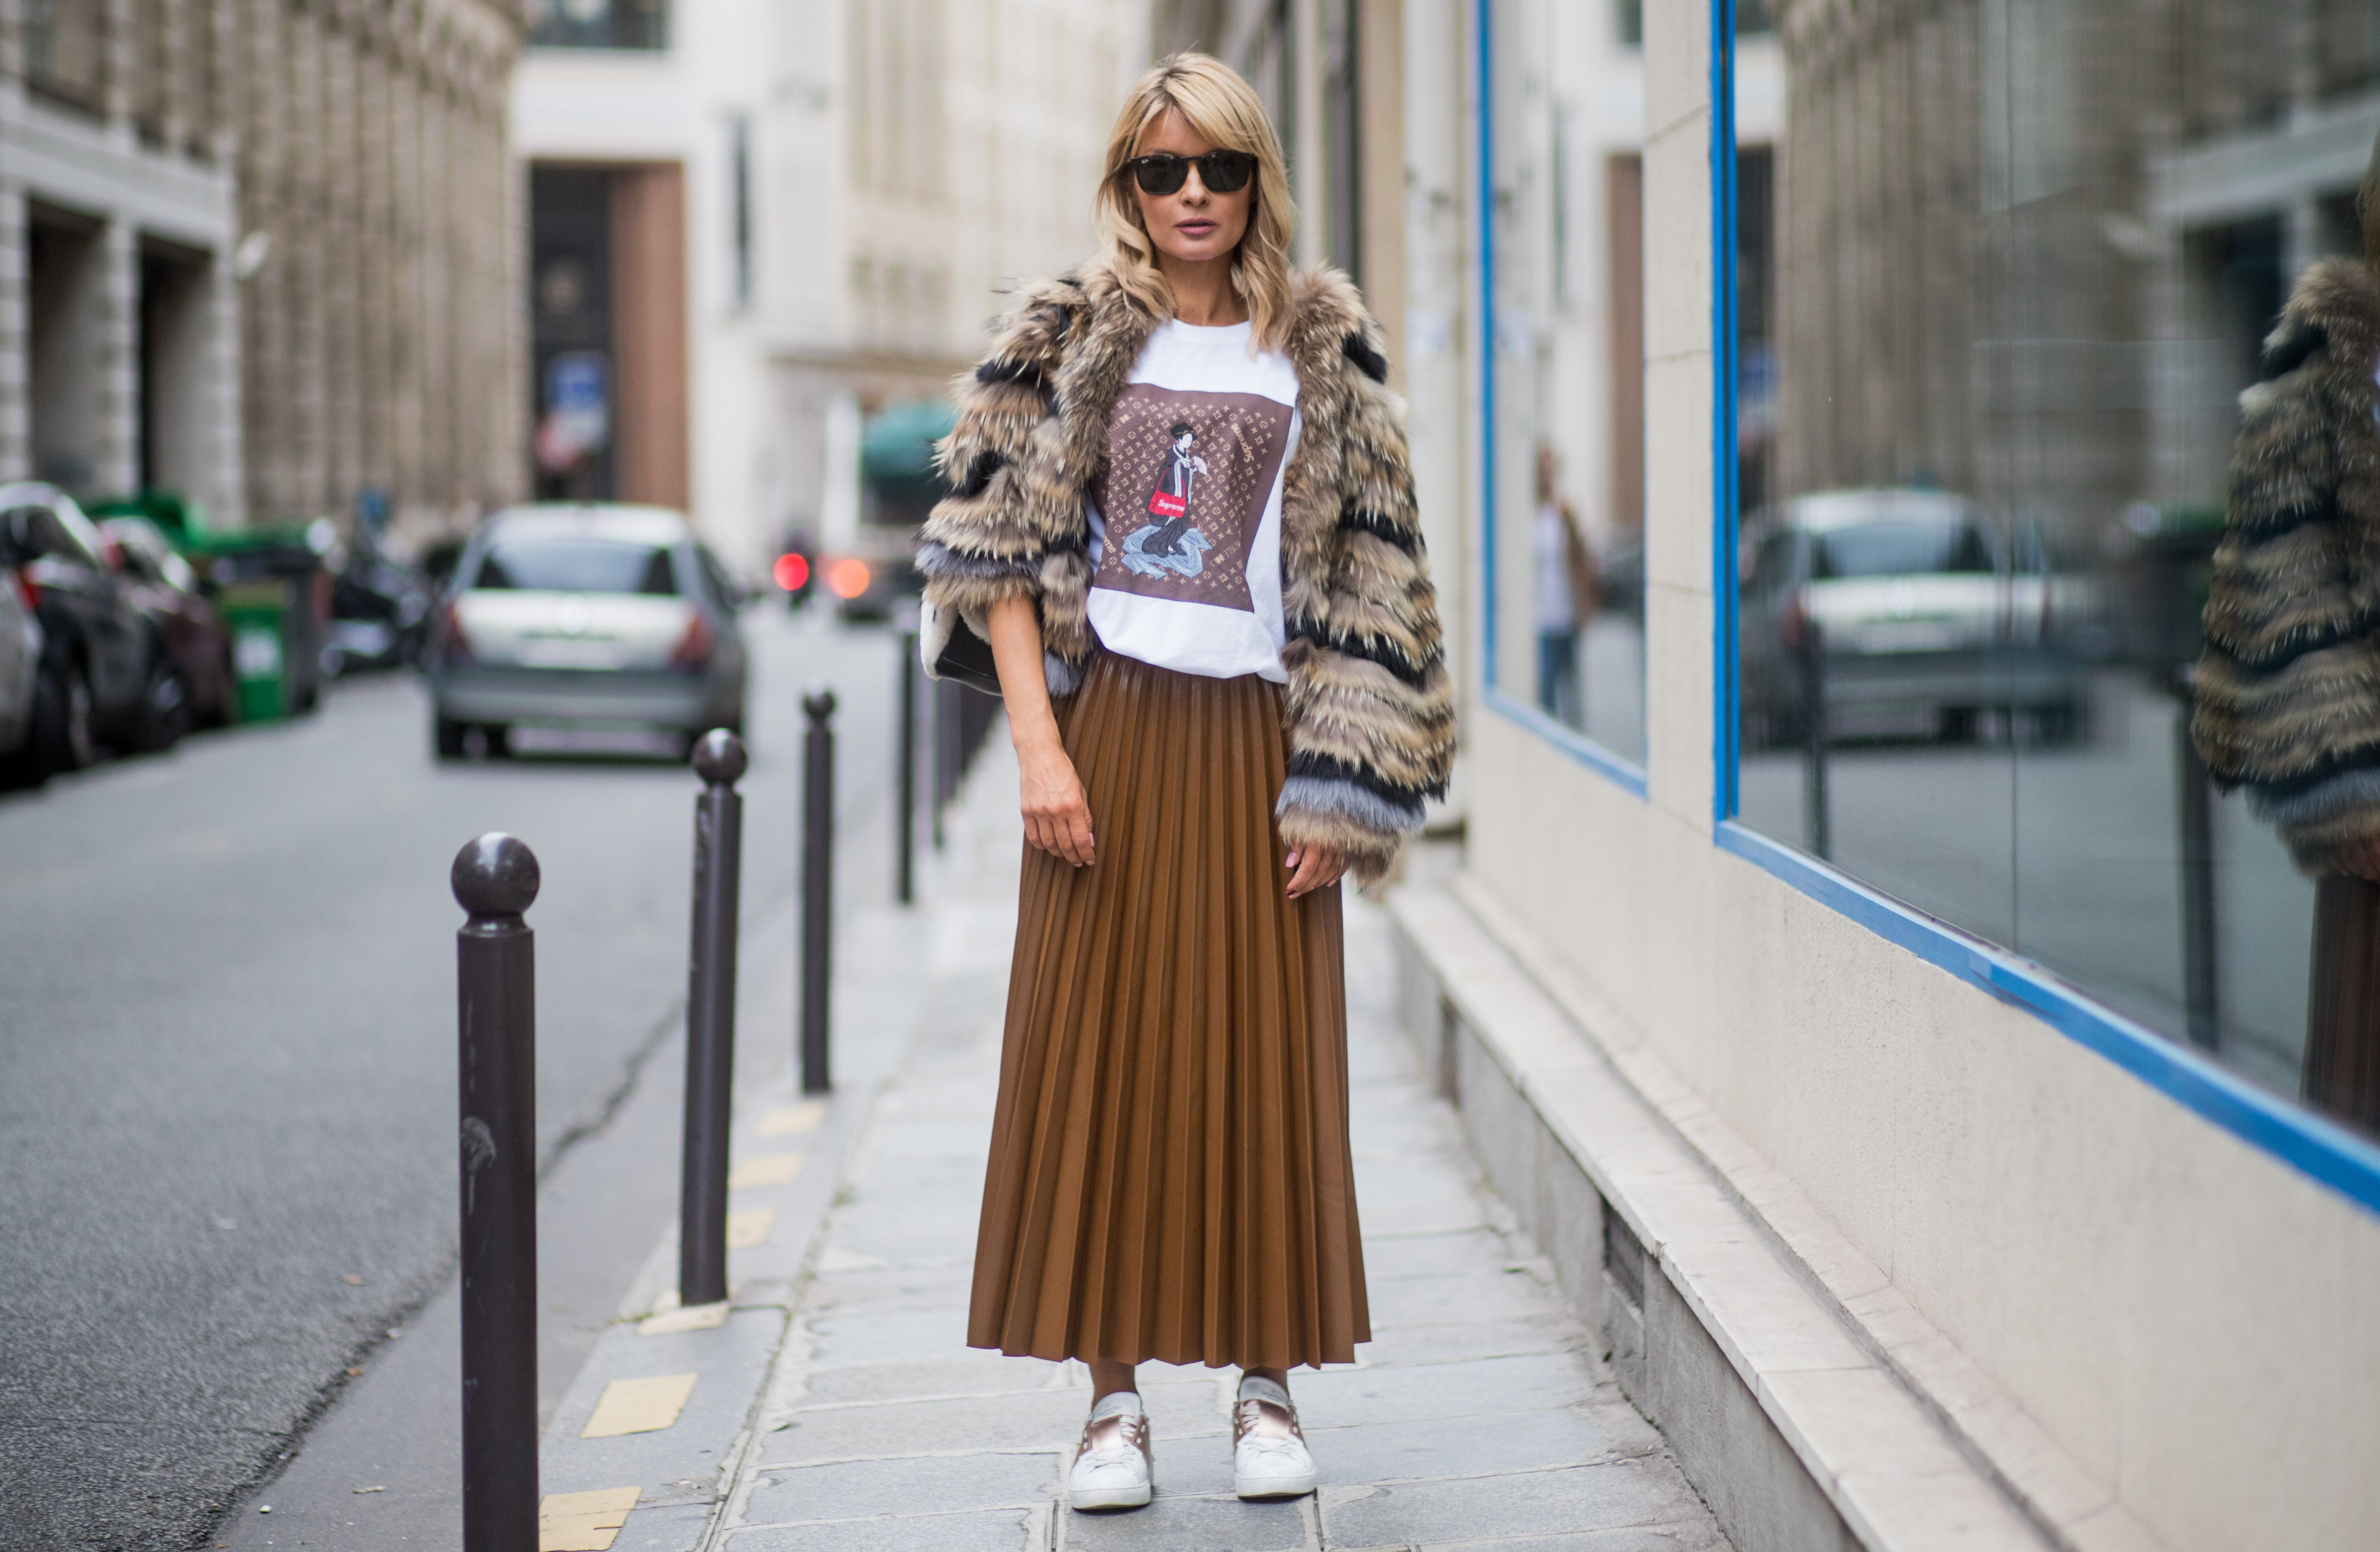 477a57bd397 The 17 Best Fashion Blogs You Should Be Following